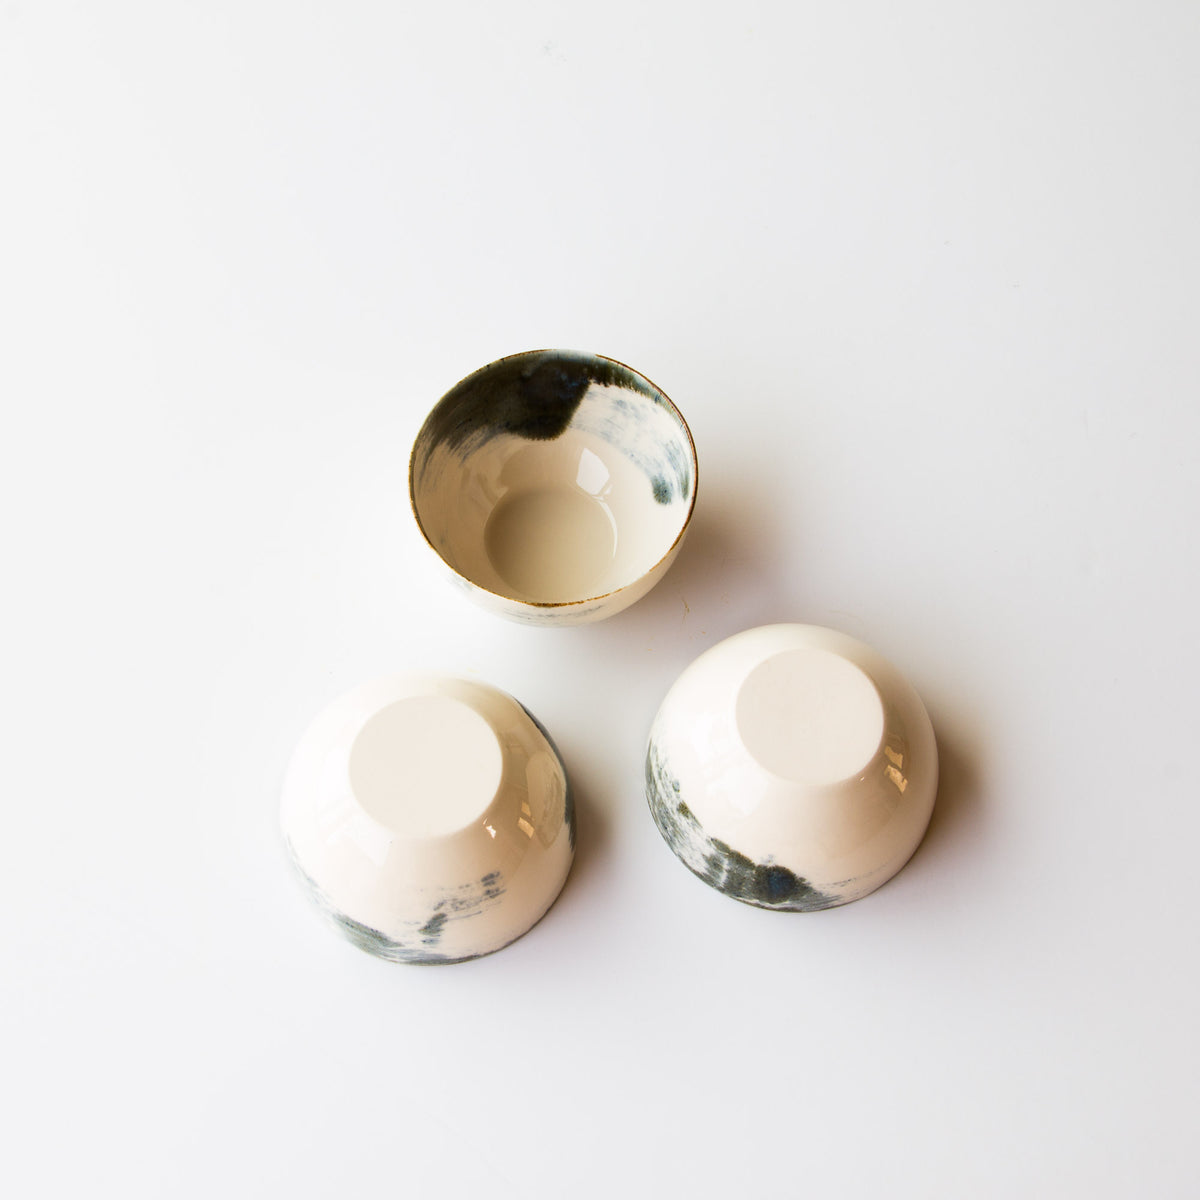 Each of these elegant little bowls painted in delicate porcelain is handmade, carved and sanded. Stackable and slightly imperfect bowls!